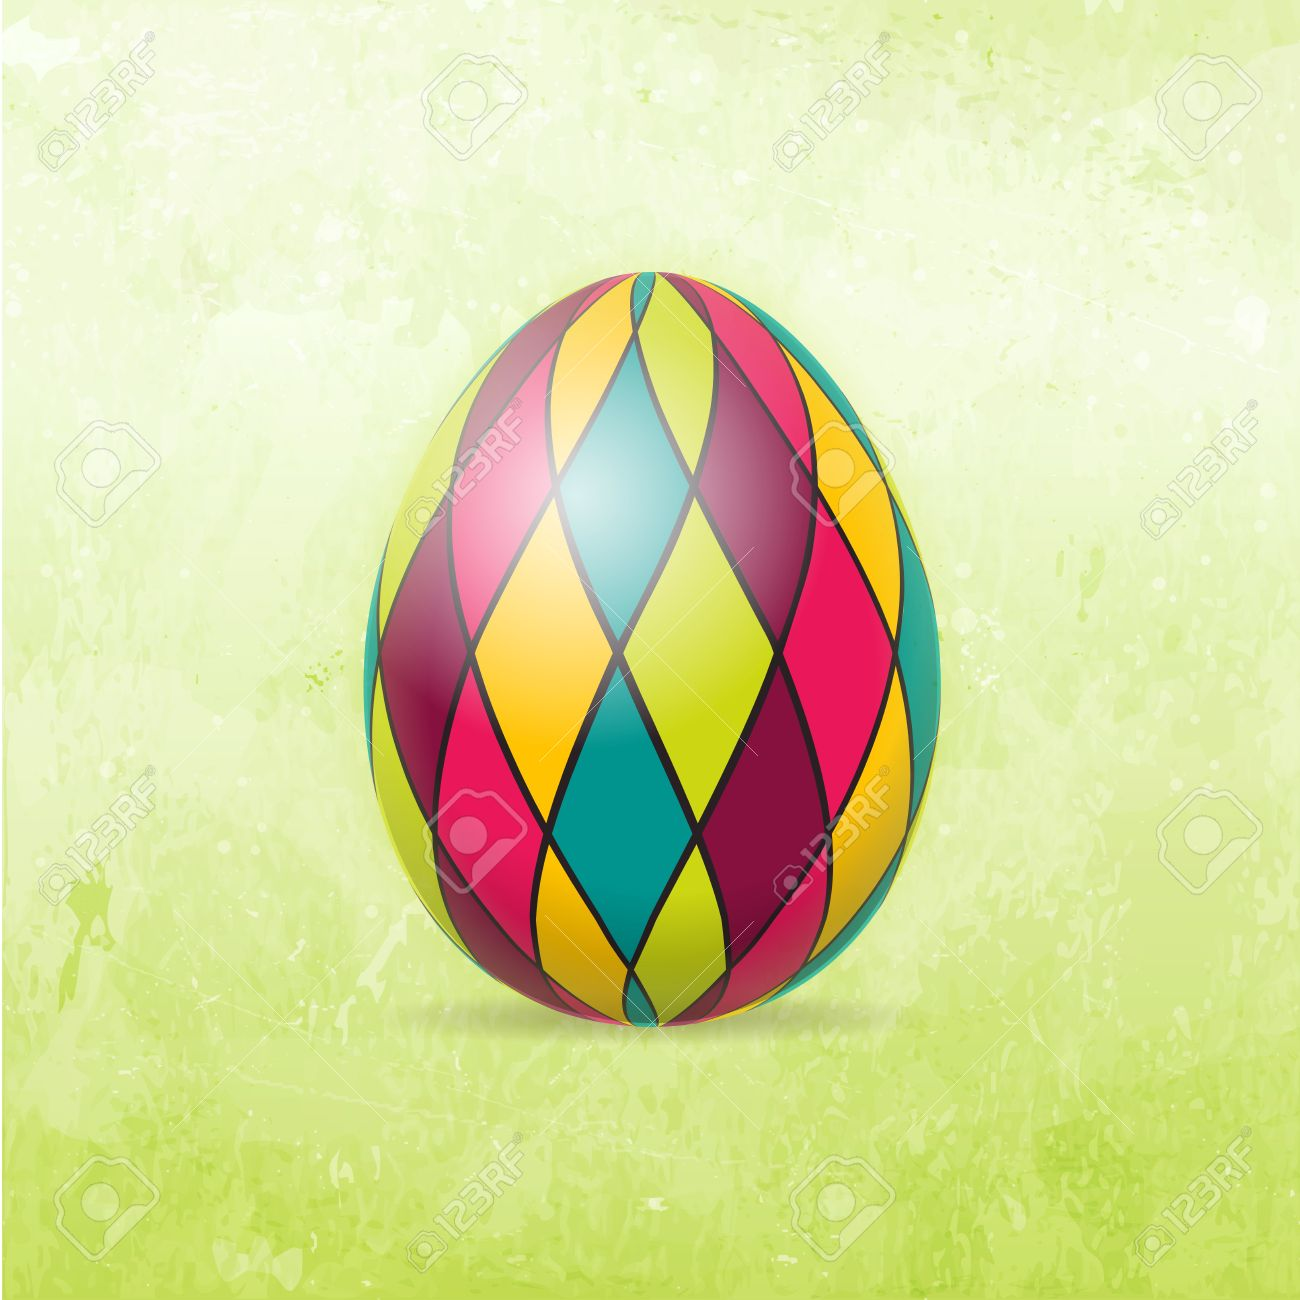 Checkered Easter Egg In Bright Colors On Distressed Background.